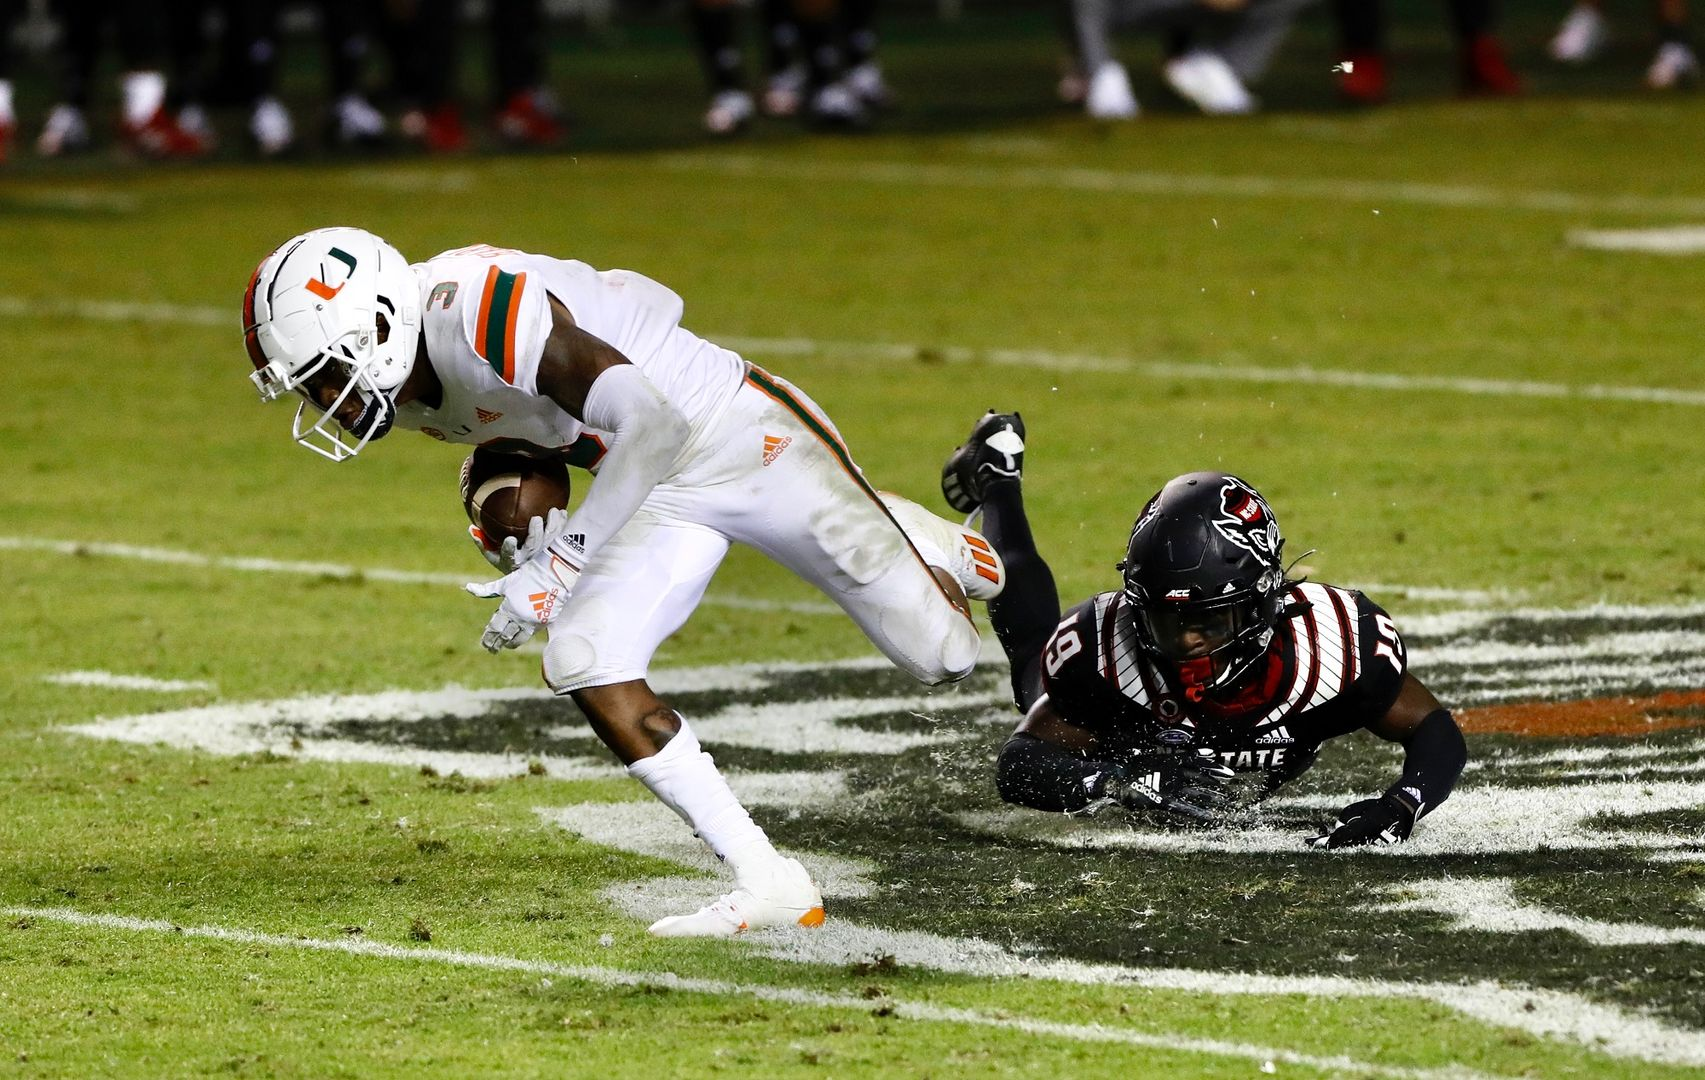 Photo Gallery: Canes Football at NC State